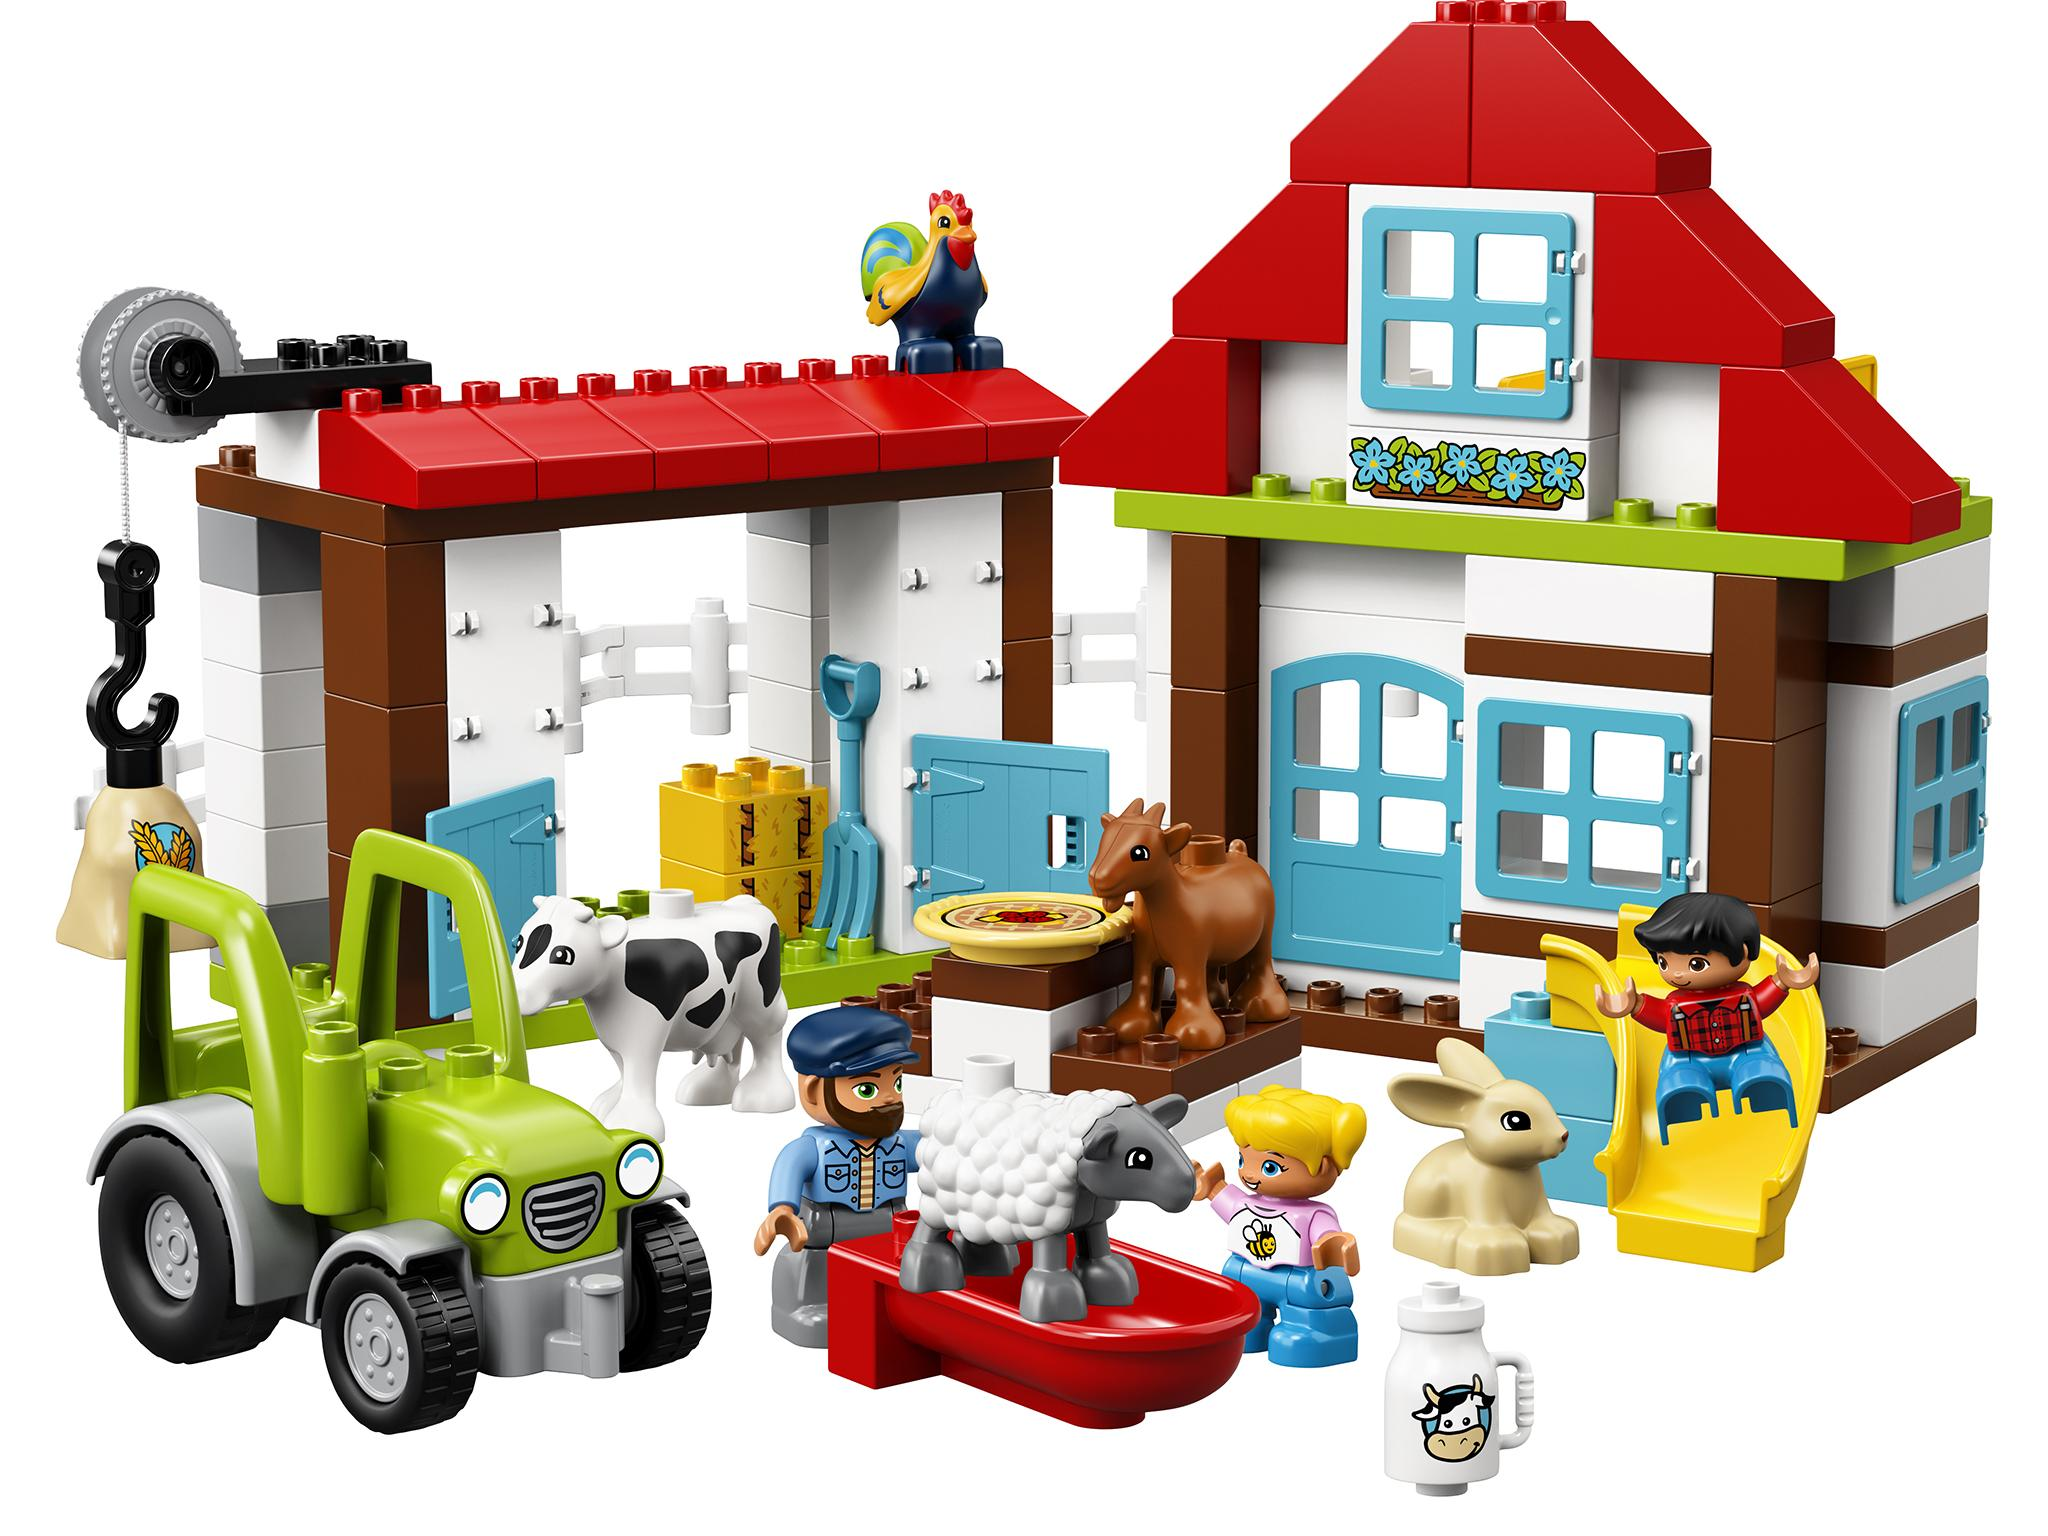 10 Best Gifts For 1 Year Olds The Independent